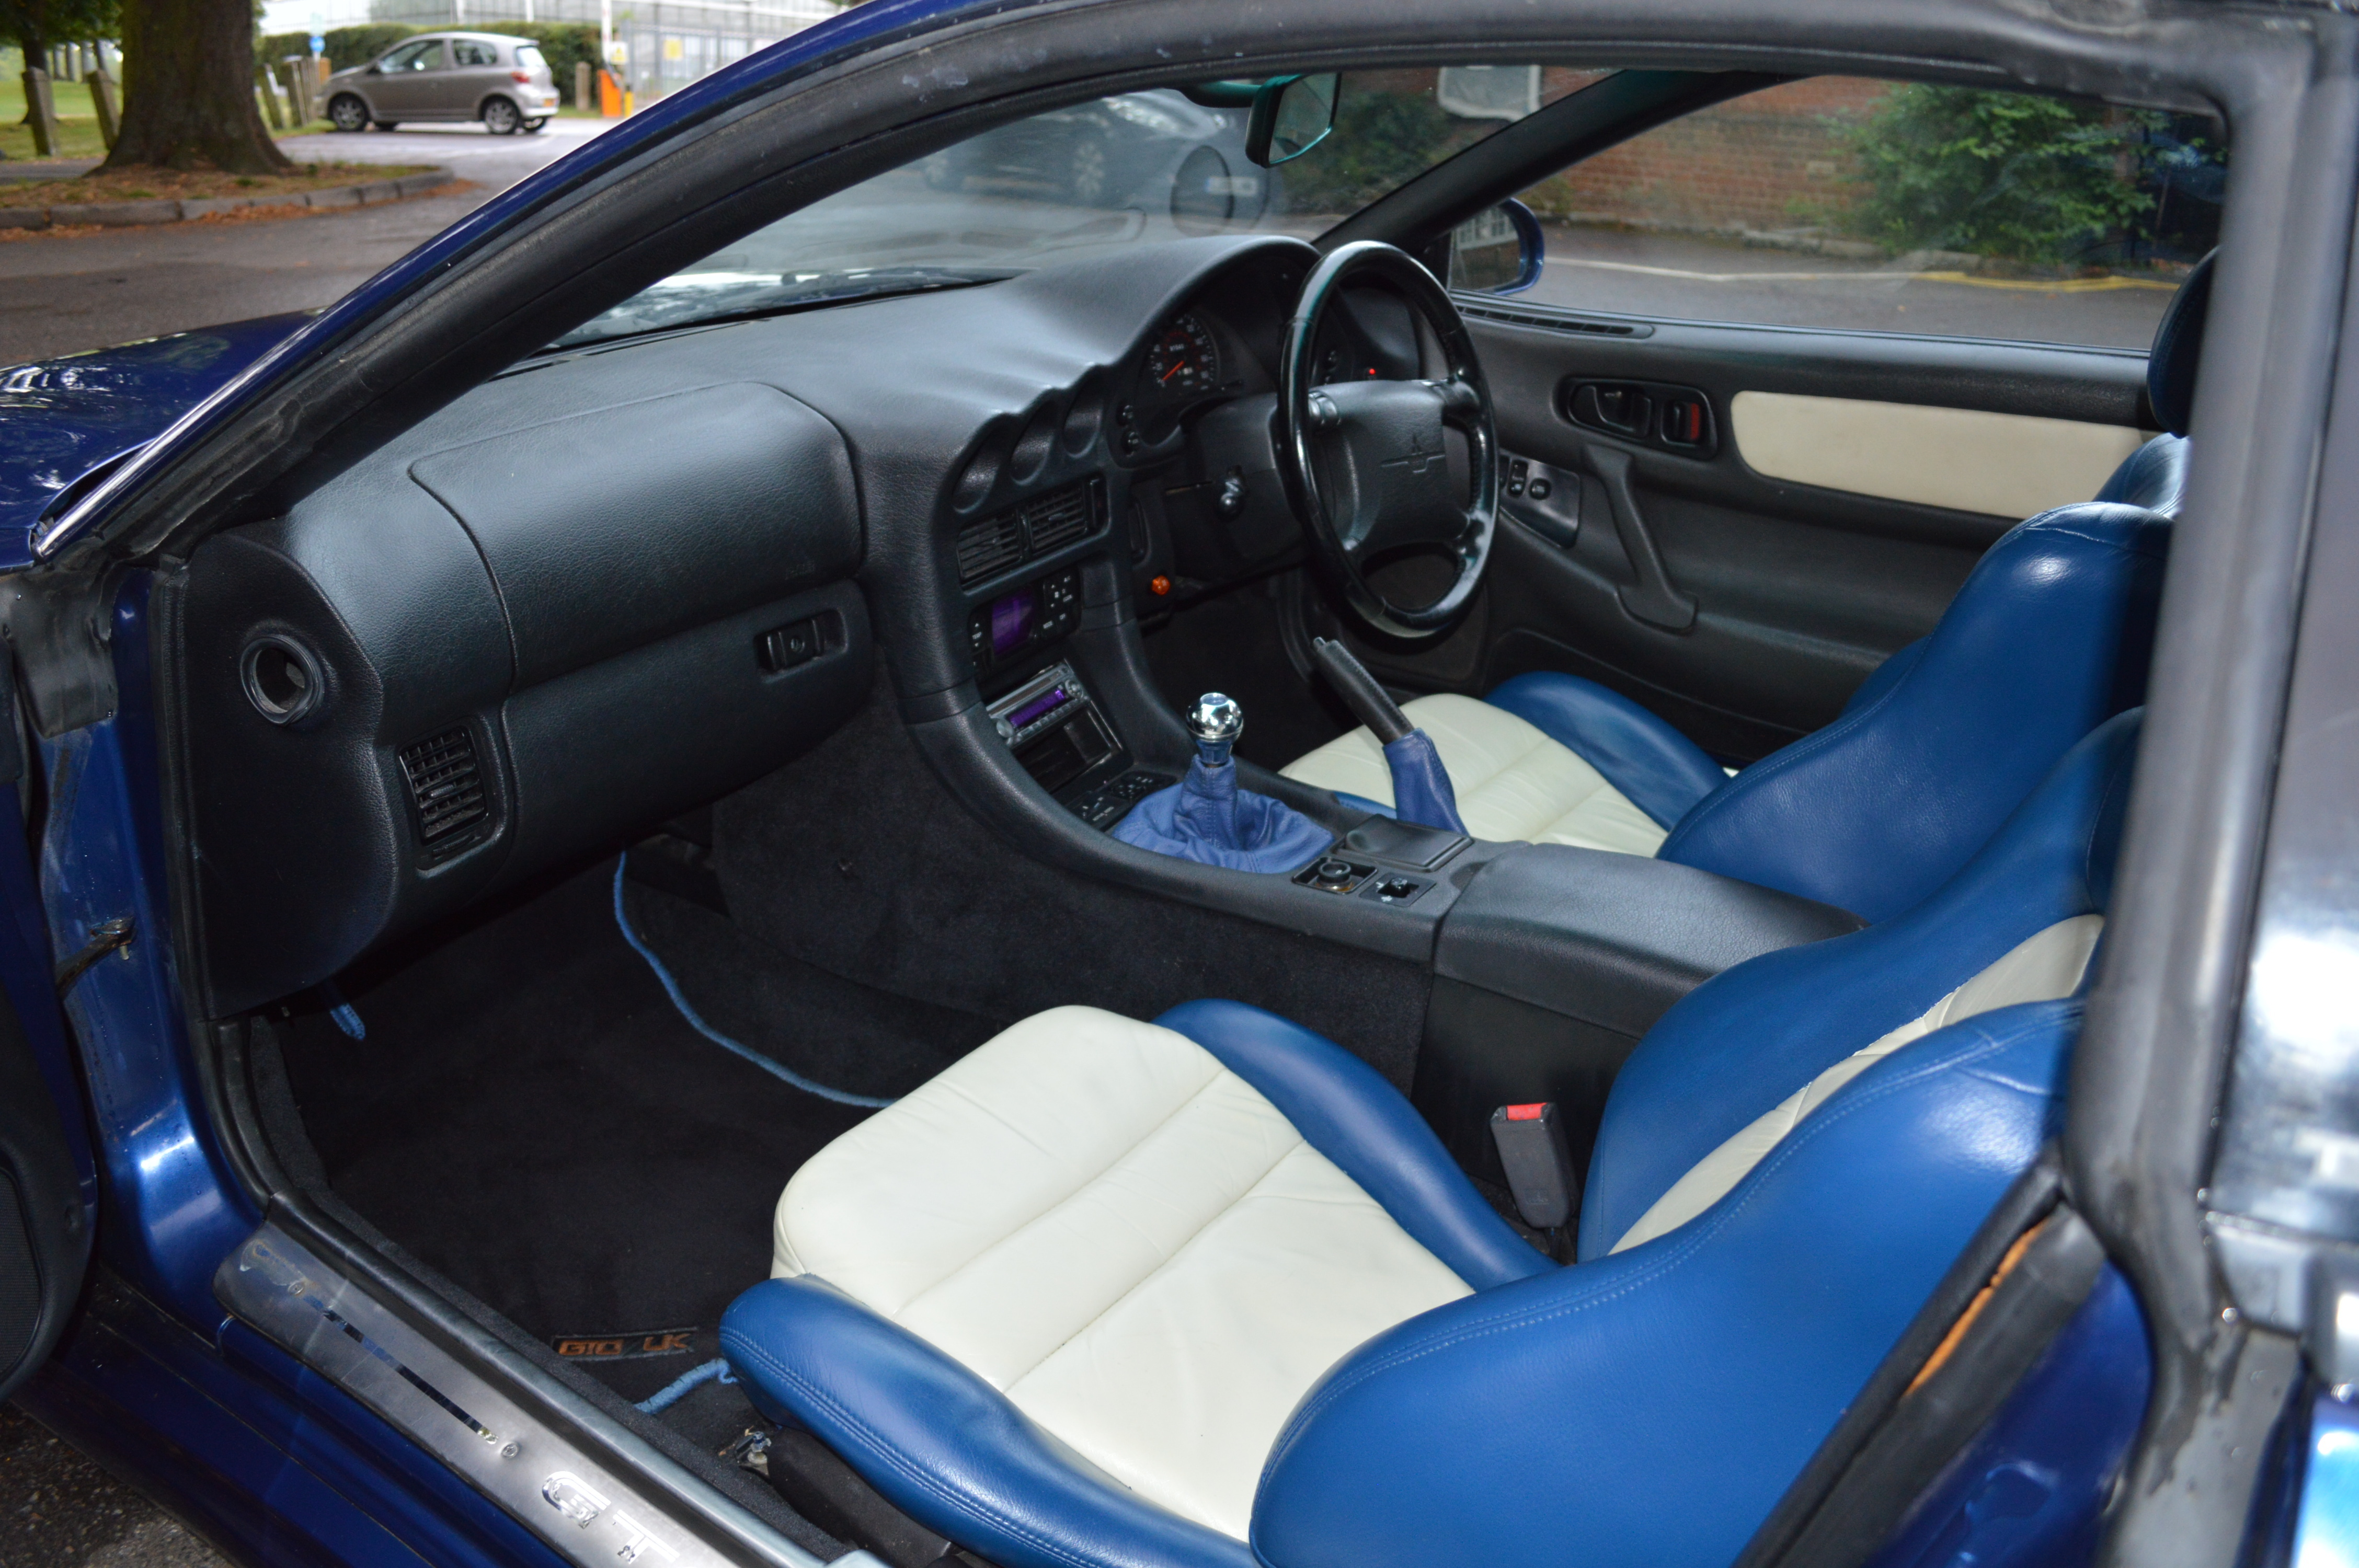 mitsubishi gto not 3000gt twin turbo manual only 10 000 miles